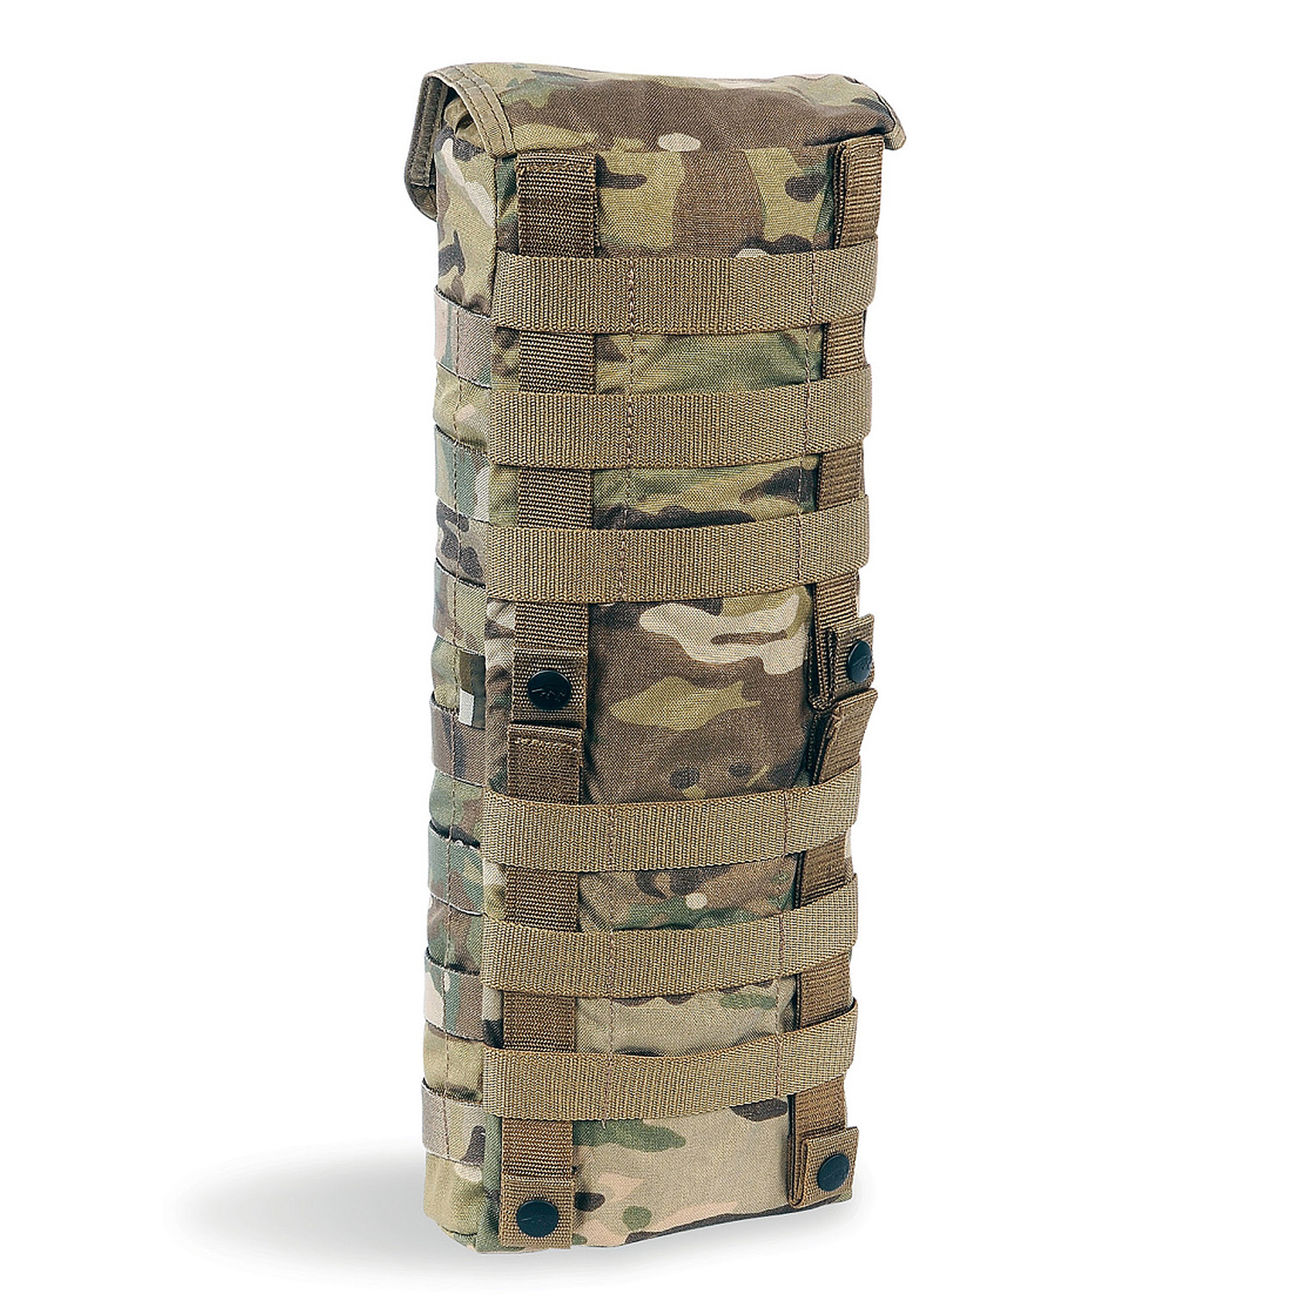 TT Bladder Pouch multicam 1